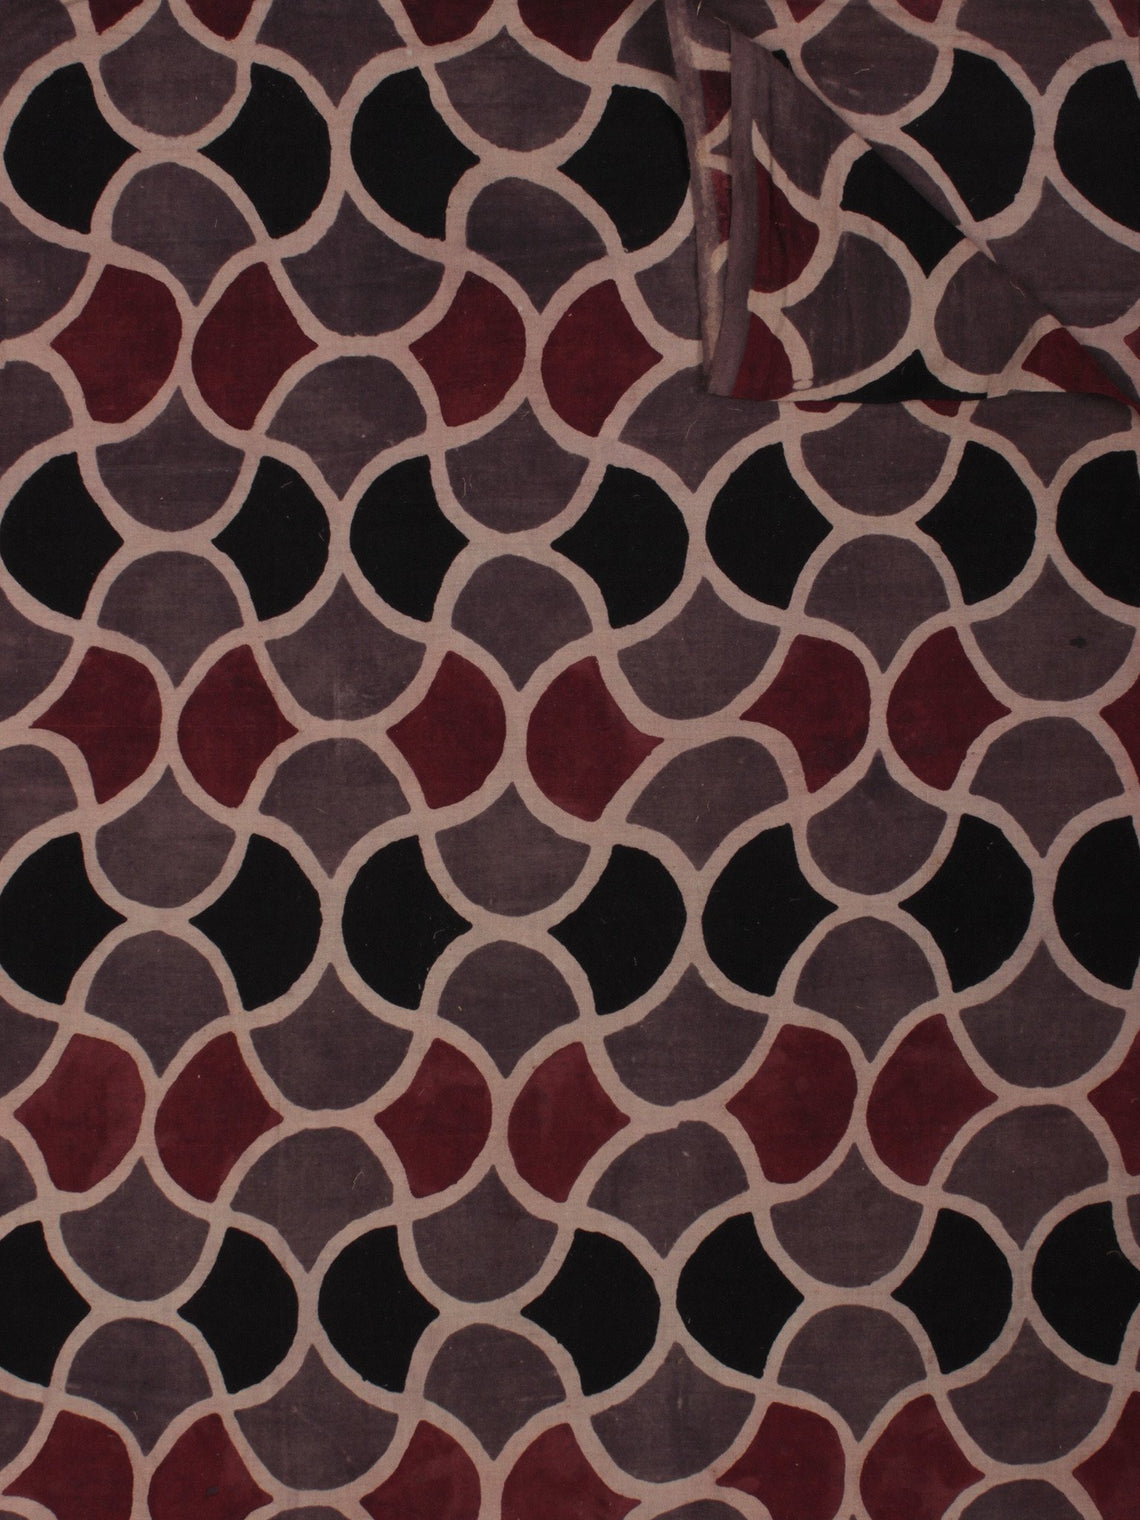 Kashish Maroon Black Beige Ajrakh Block Printed Cotton Fabric Per Meter - F003F849